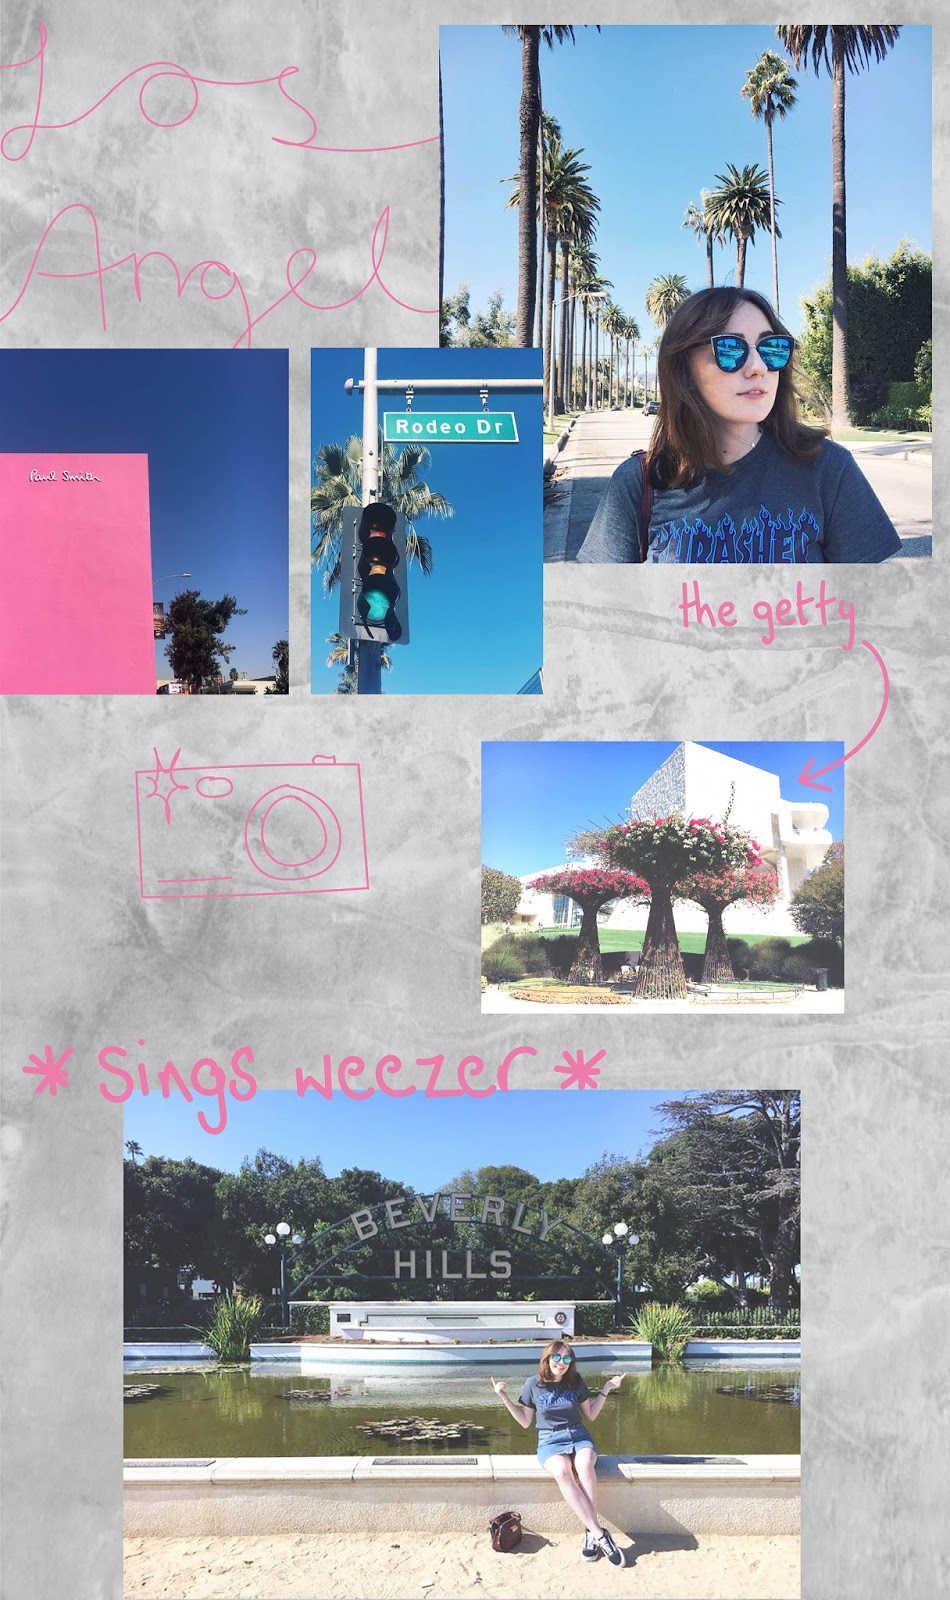 collage of photos from Beverley hills and melrose, Los Angeles